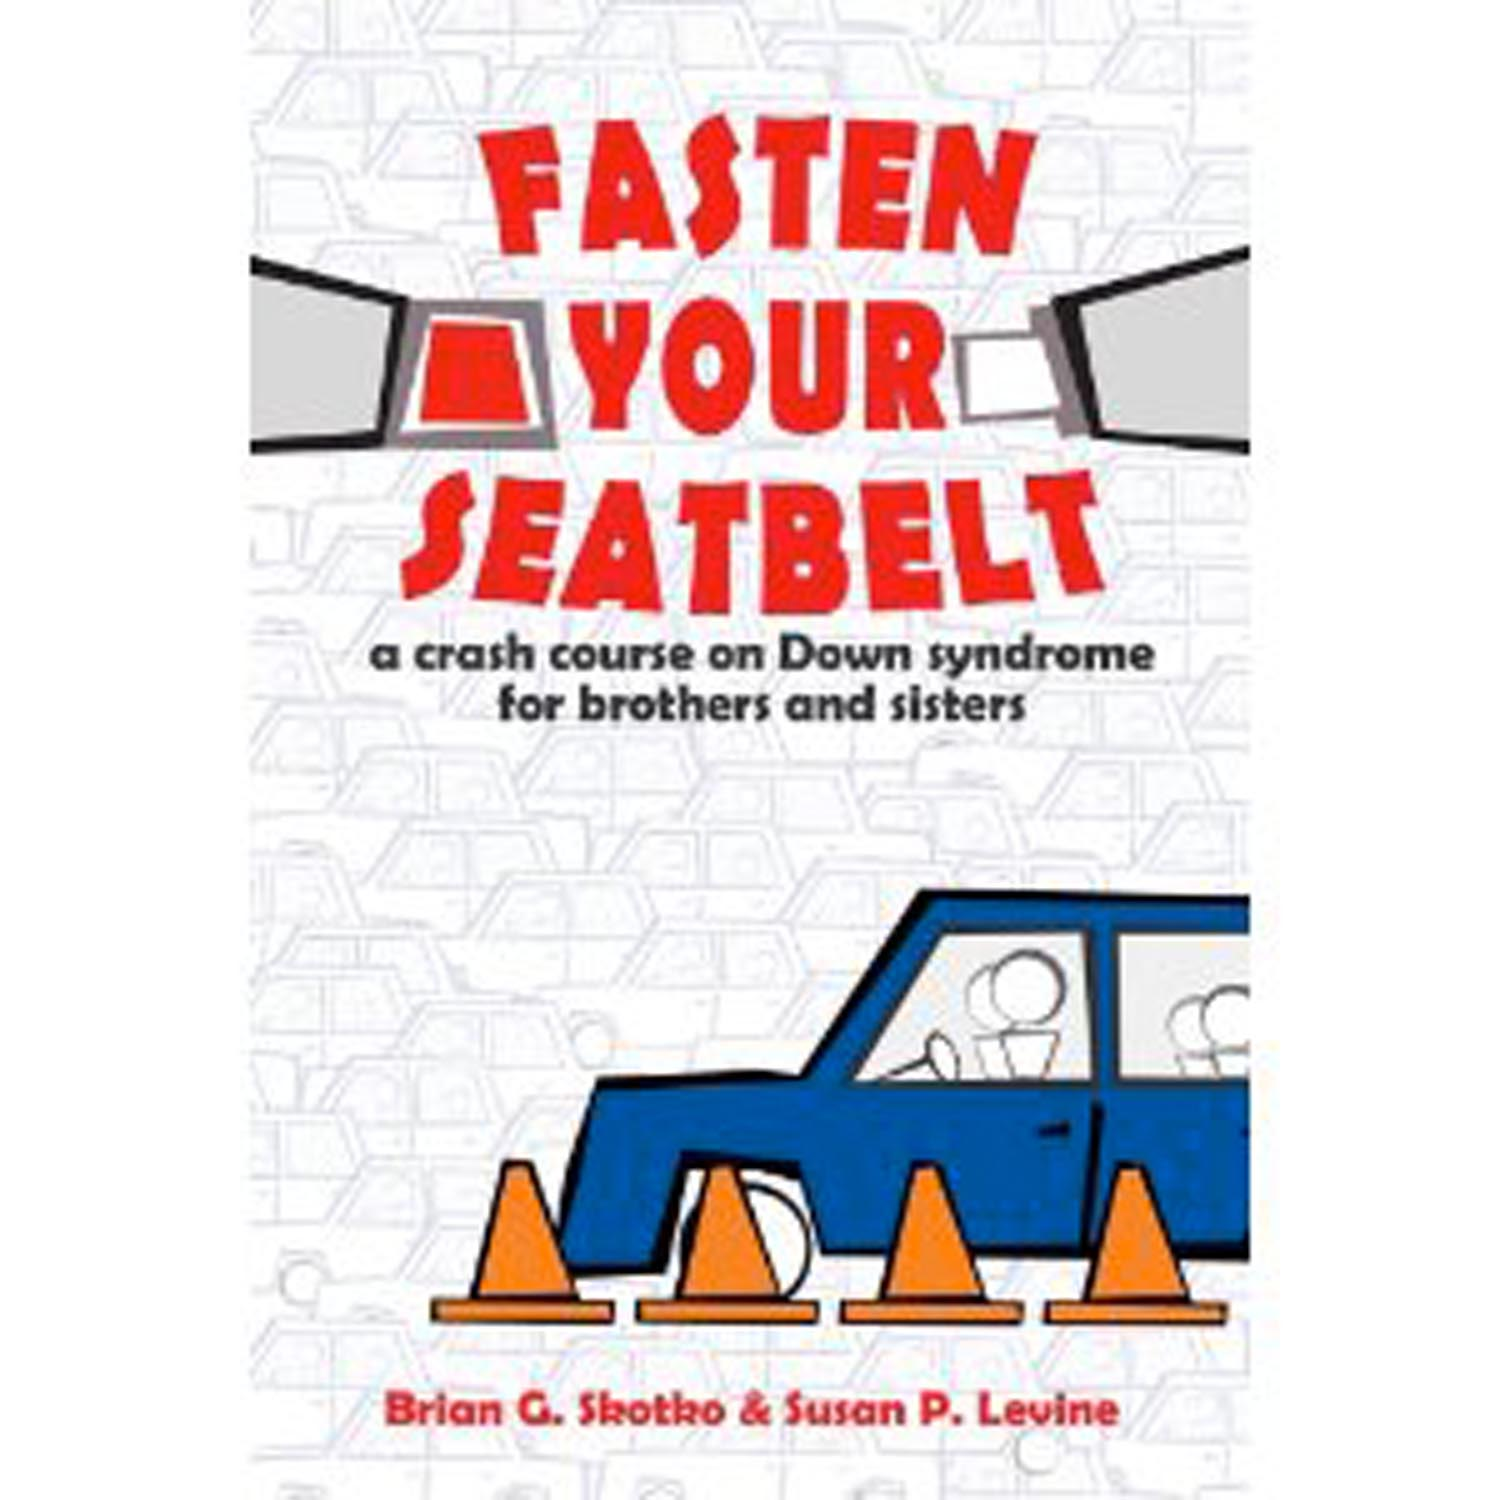 Fasten Your Seatbelt - A Crash Course on Down syndrome for brothers and sisters Image